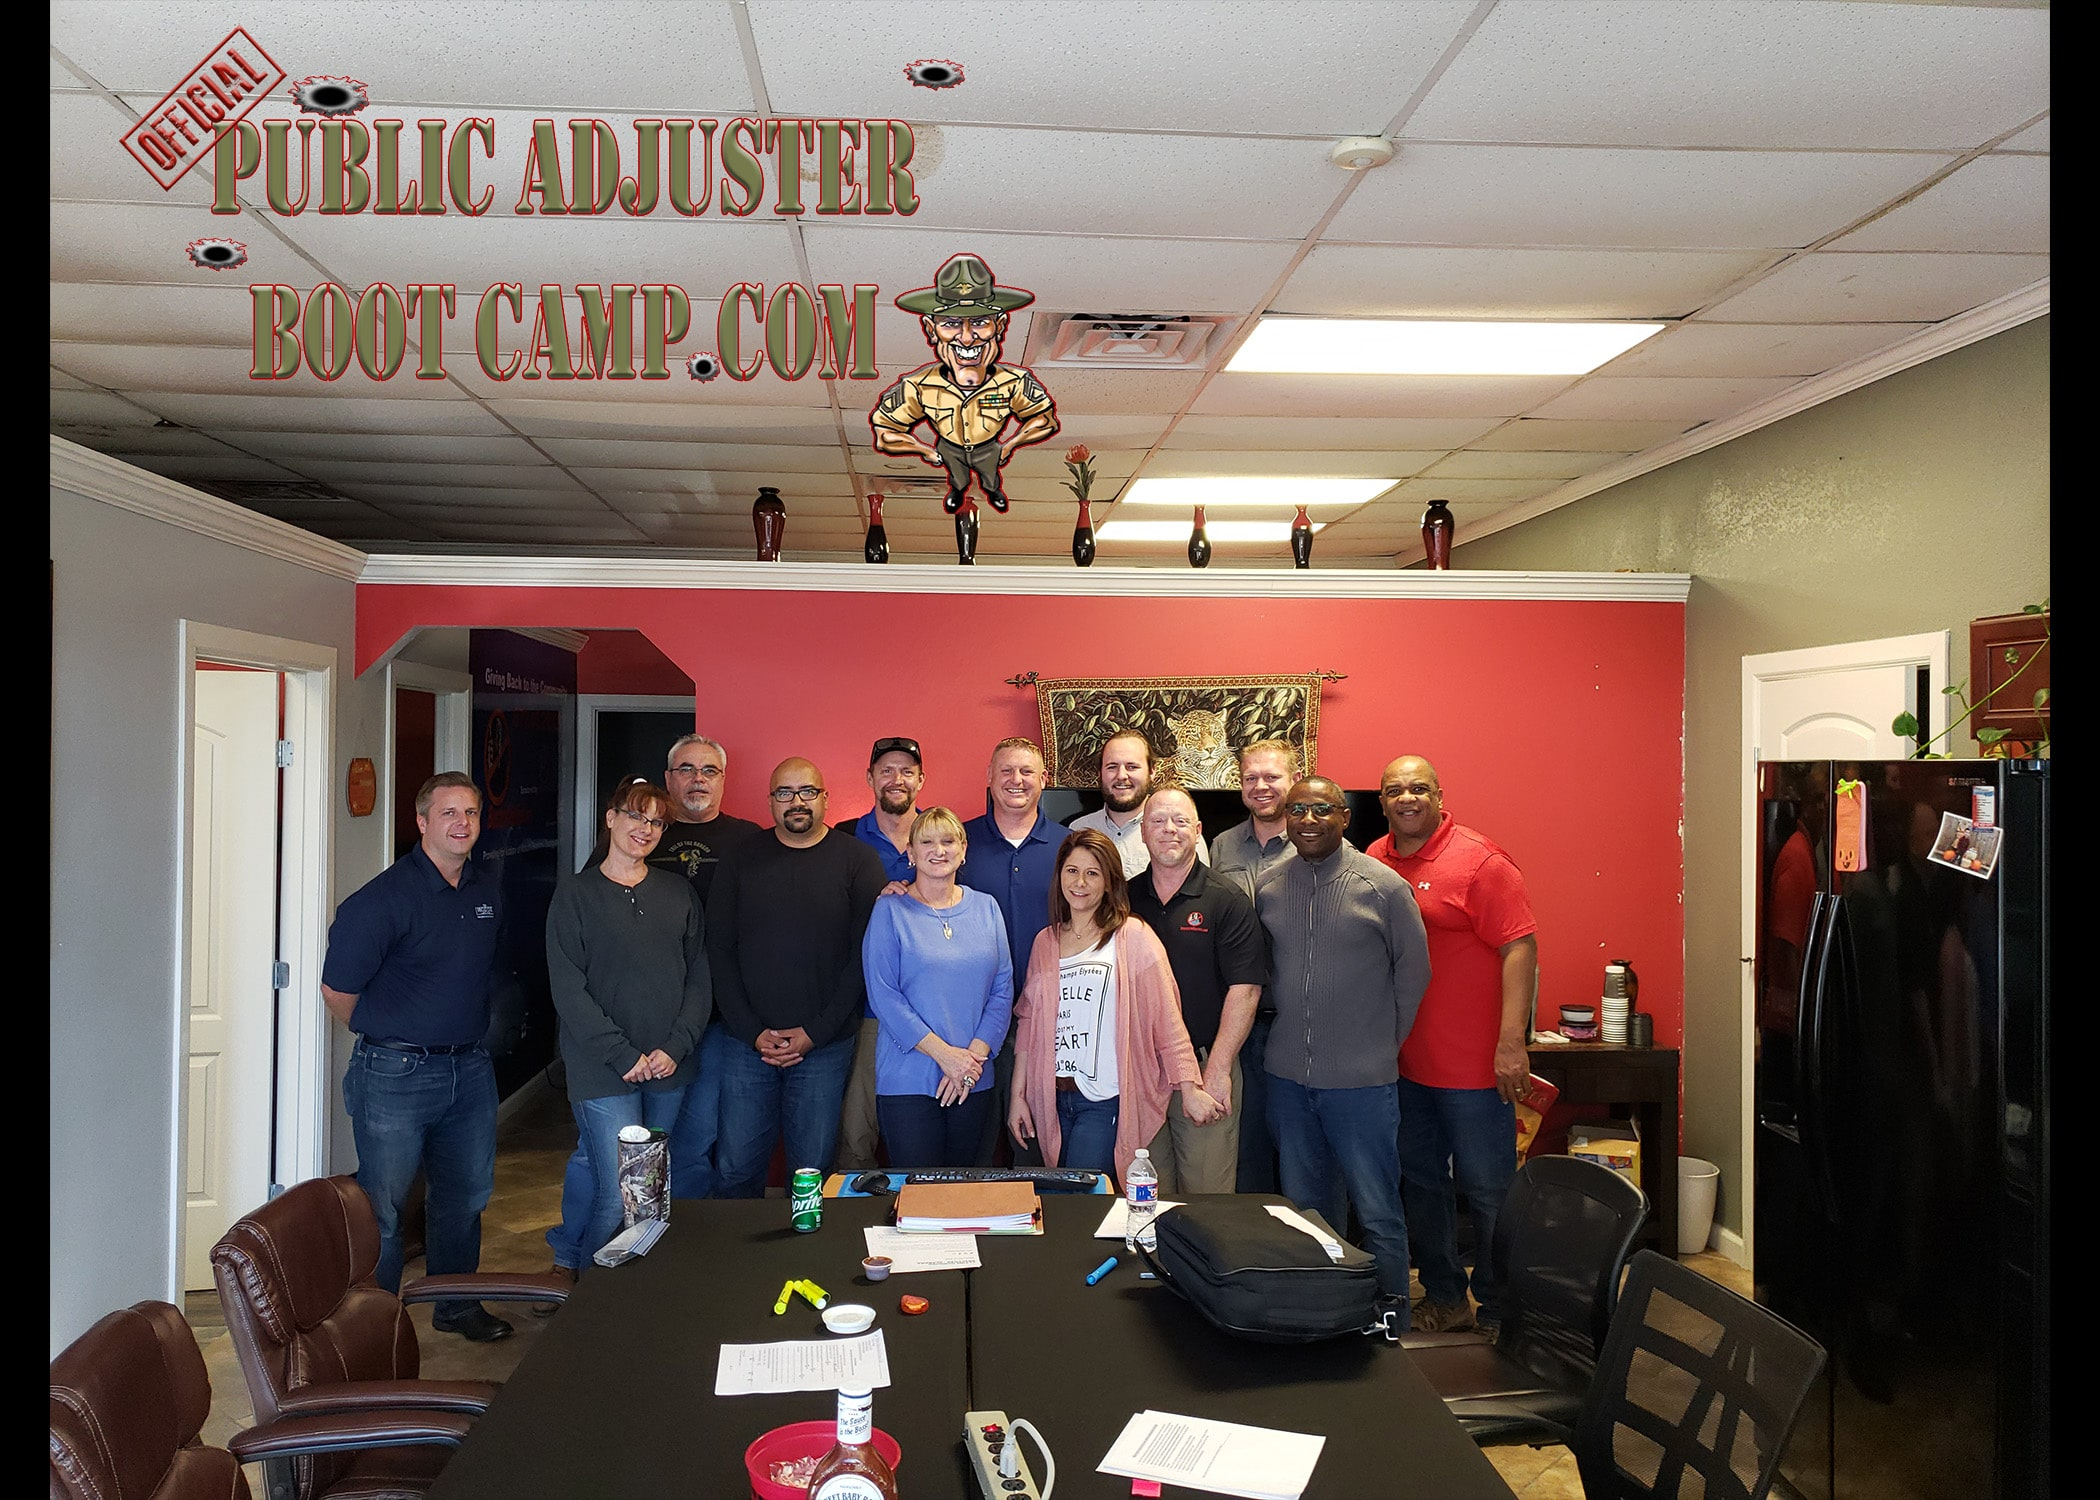 What folks are saying about PublicAdjusterBootCamp.com